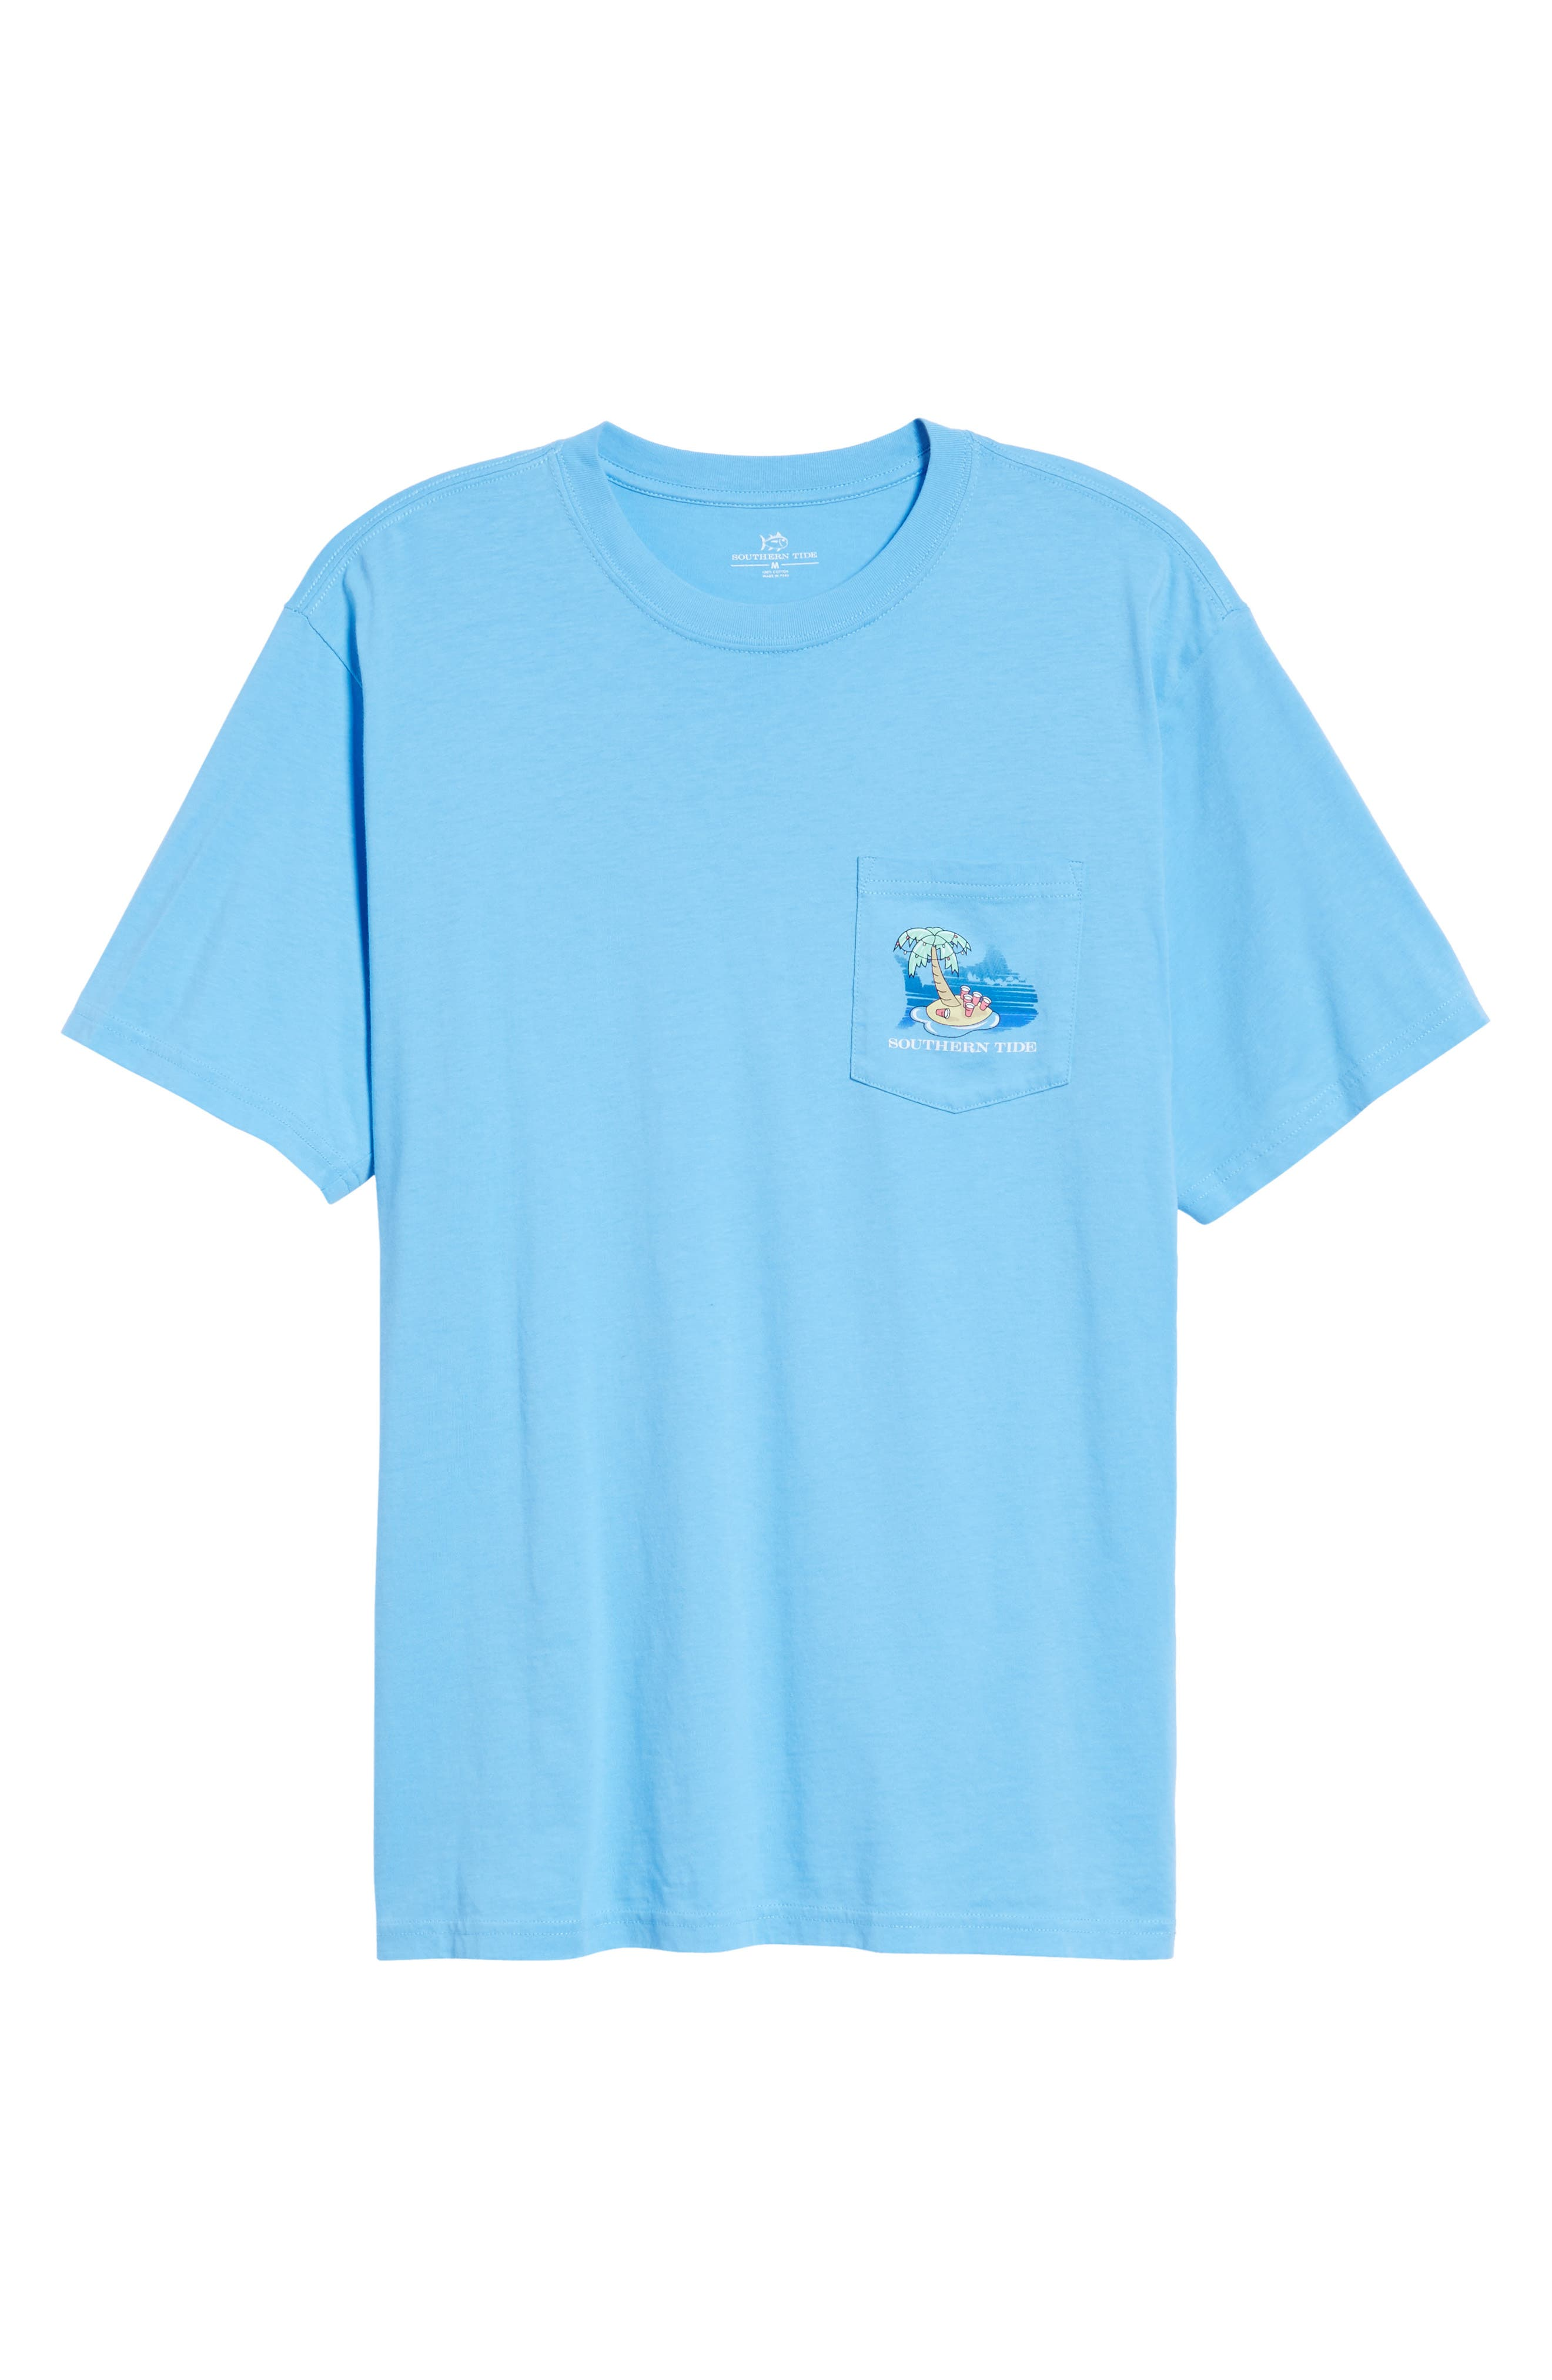 Reindeer Holiday T-Shirt,                             Alternate thumbnail 6, color,                             392